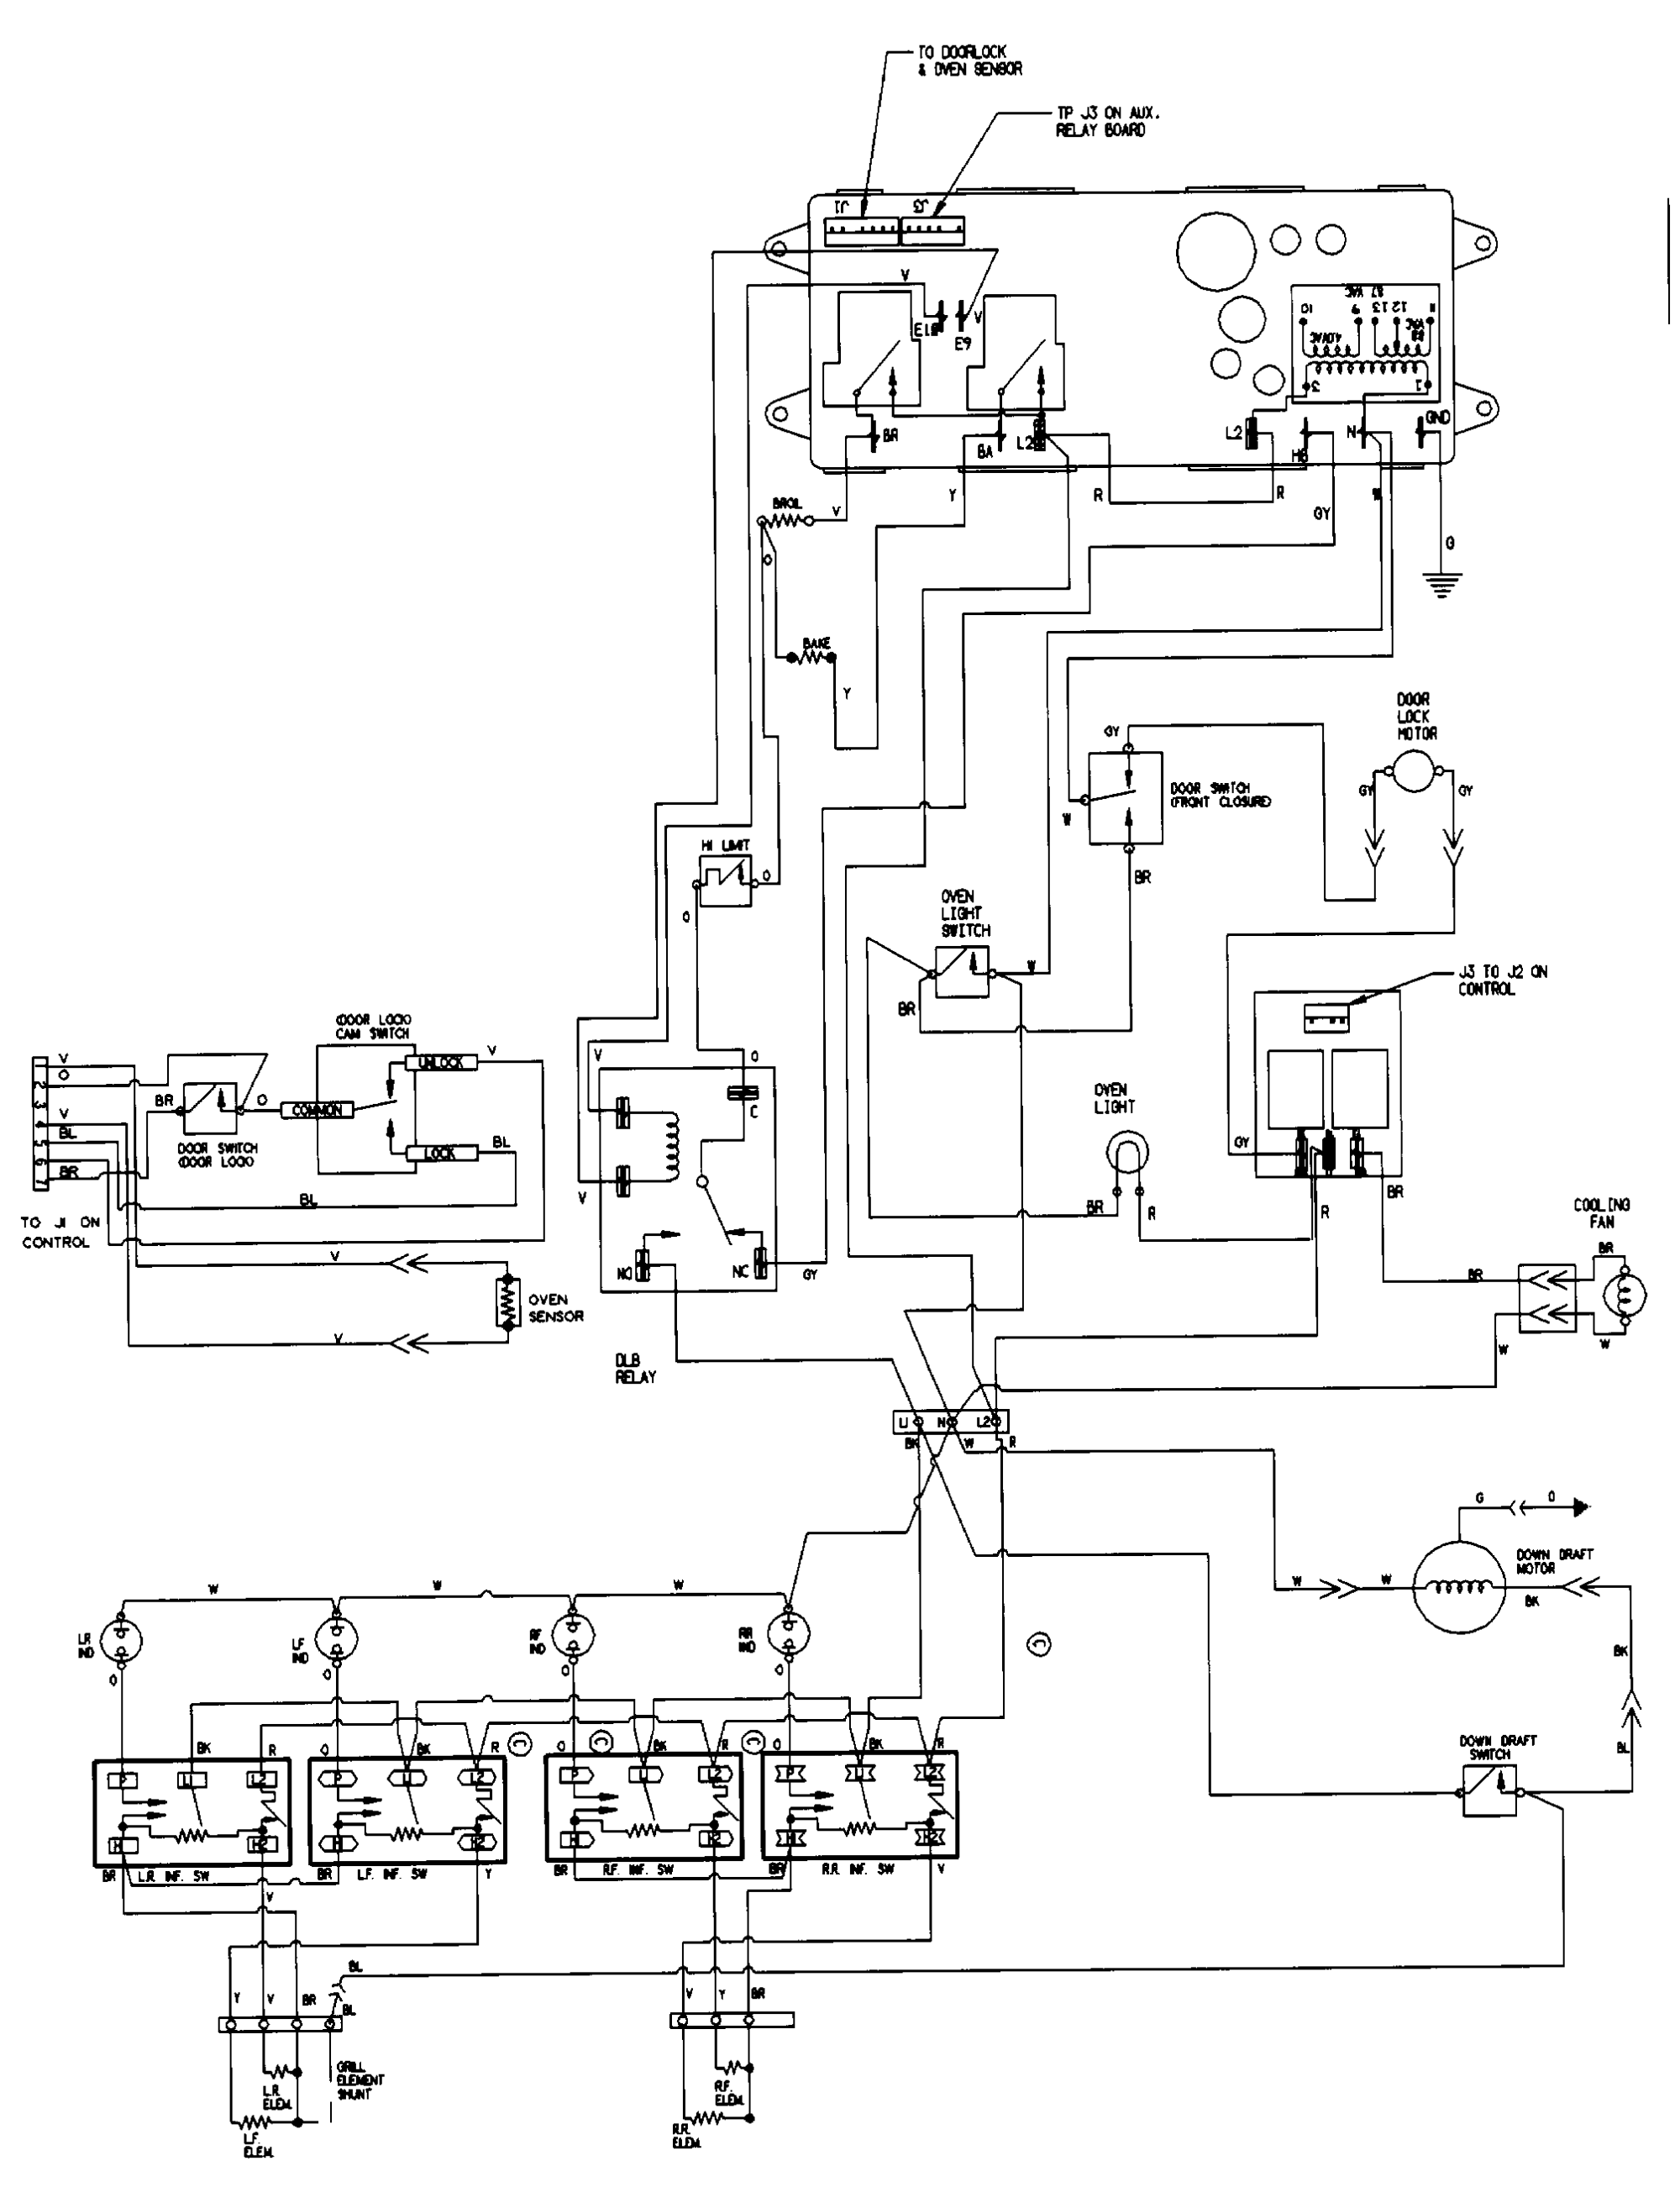 hight resolution of wiring oven top wiring diagram pass stove top wiring diagram wiring diagram data today wiring oven